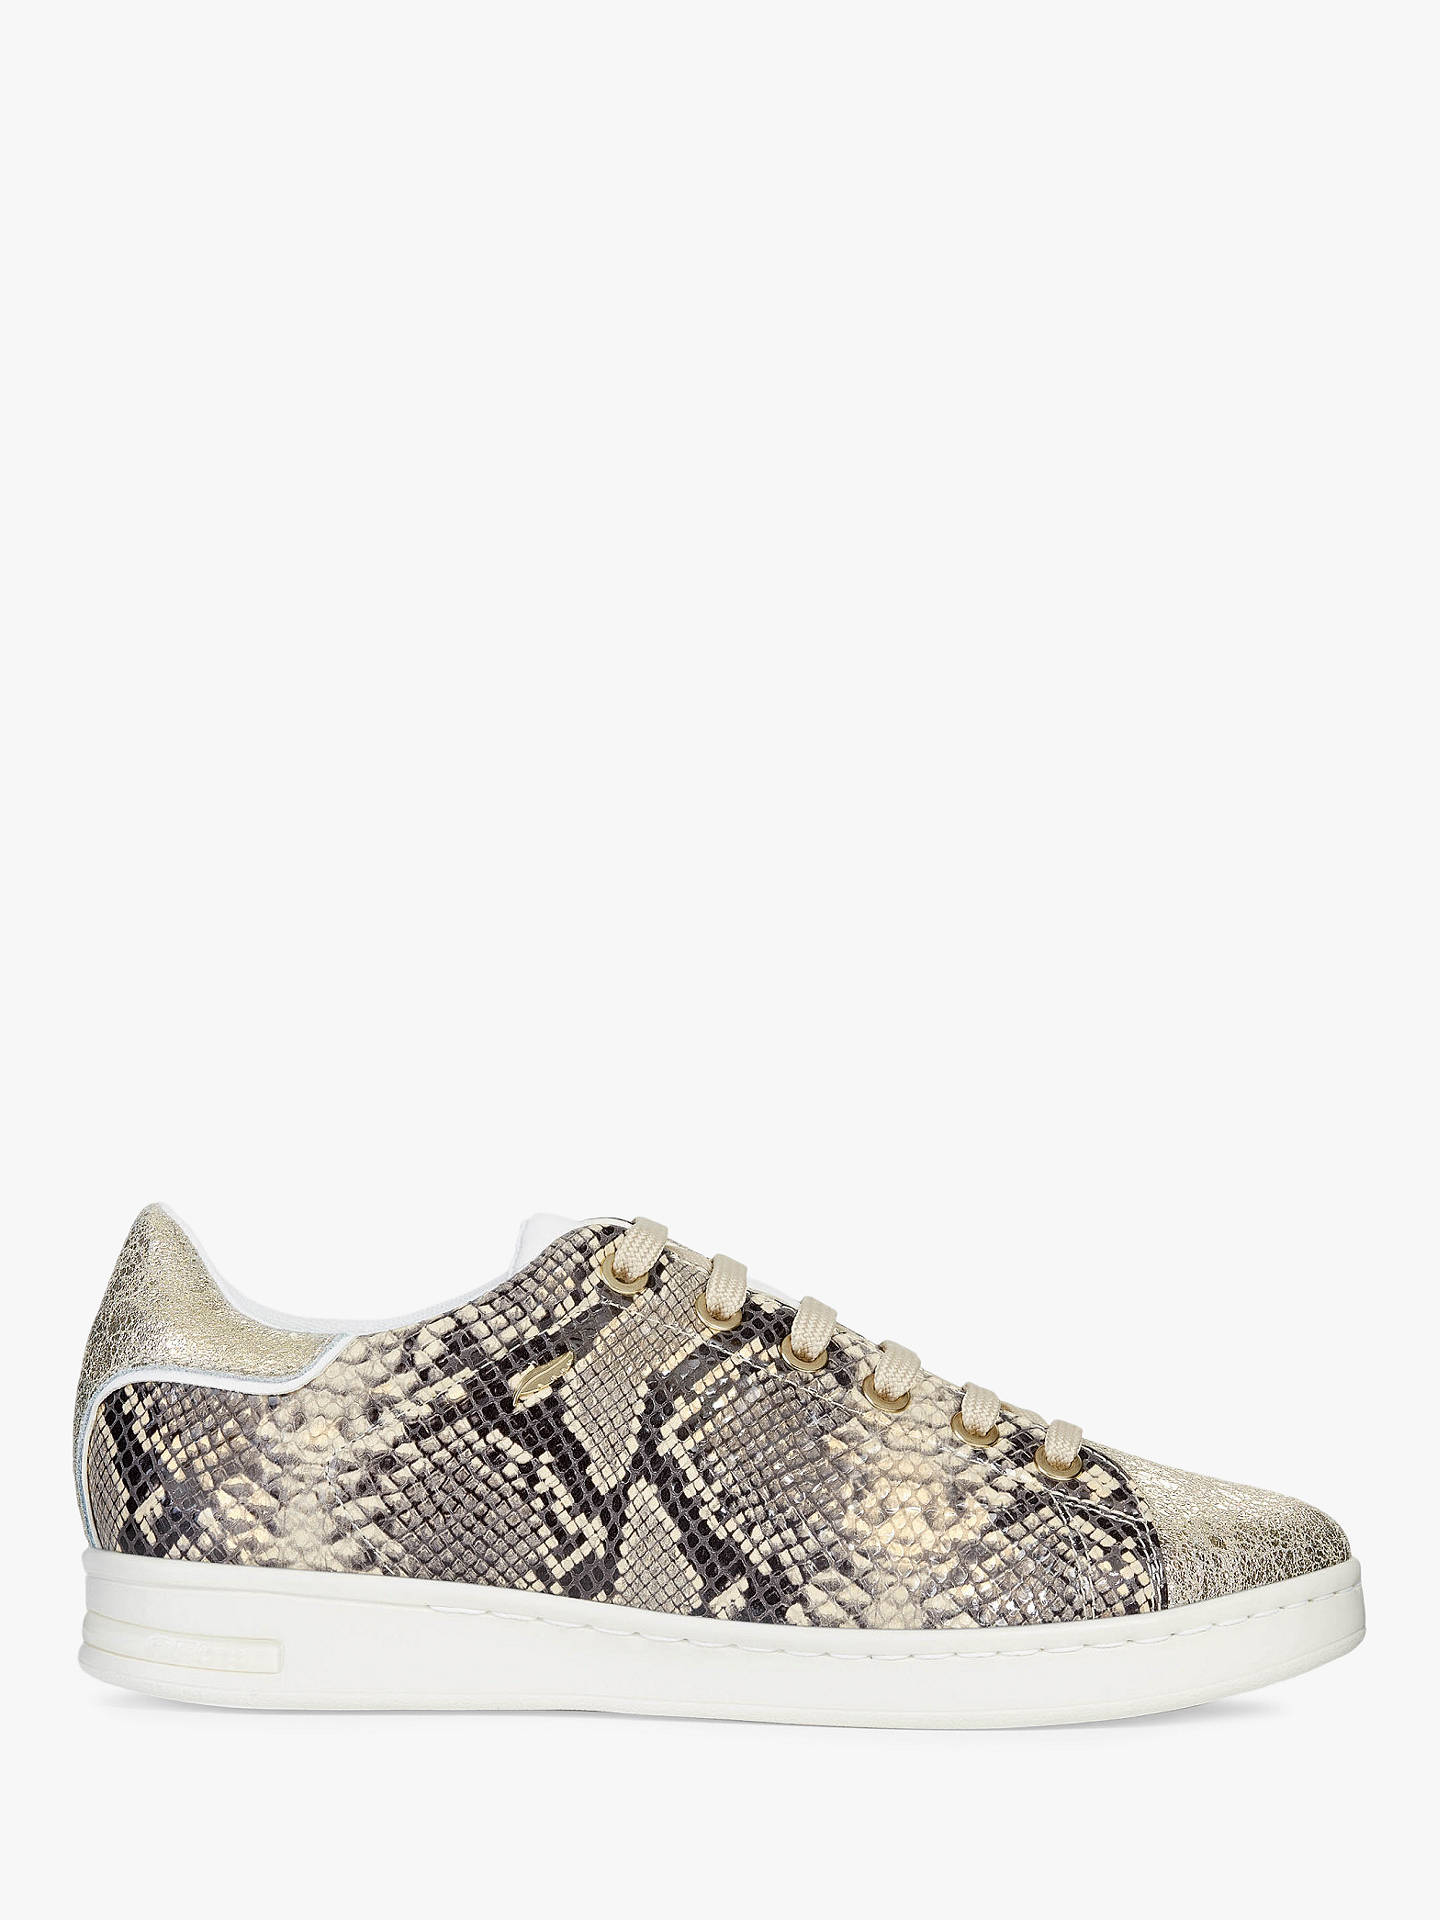 2de5233095a8 Buy Geox Women's Jaysen Animal Print Lace Up Trainers, Sand/Gold Leather, 3  ...